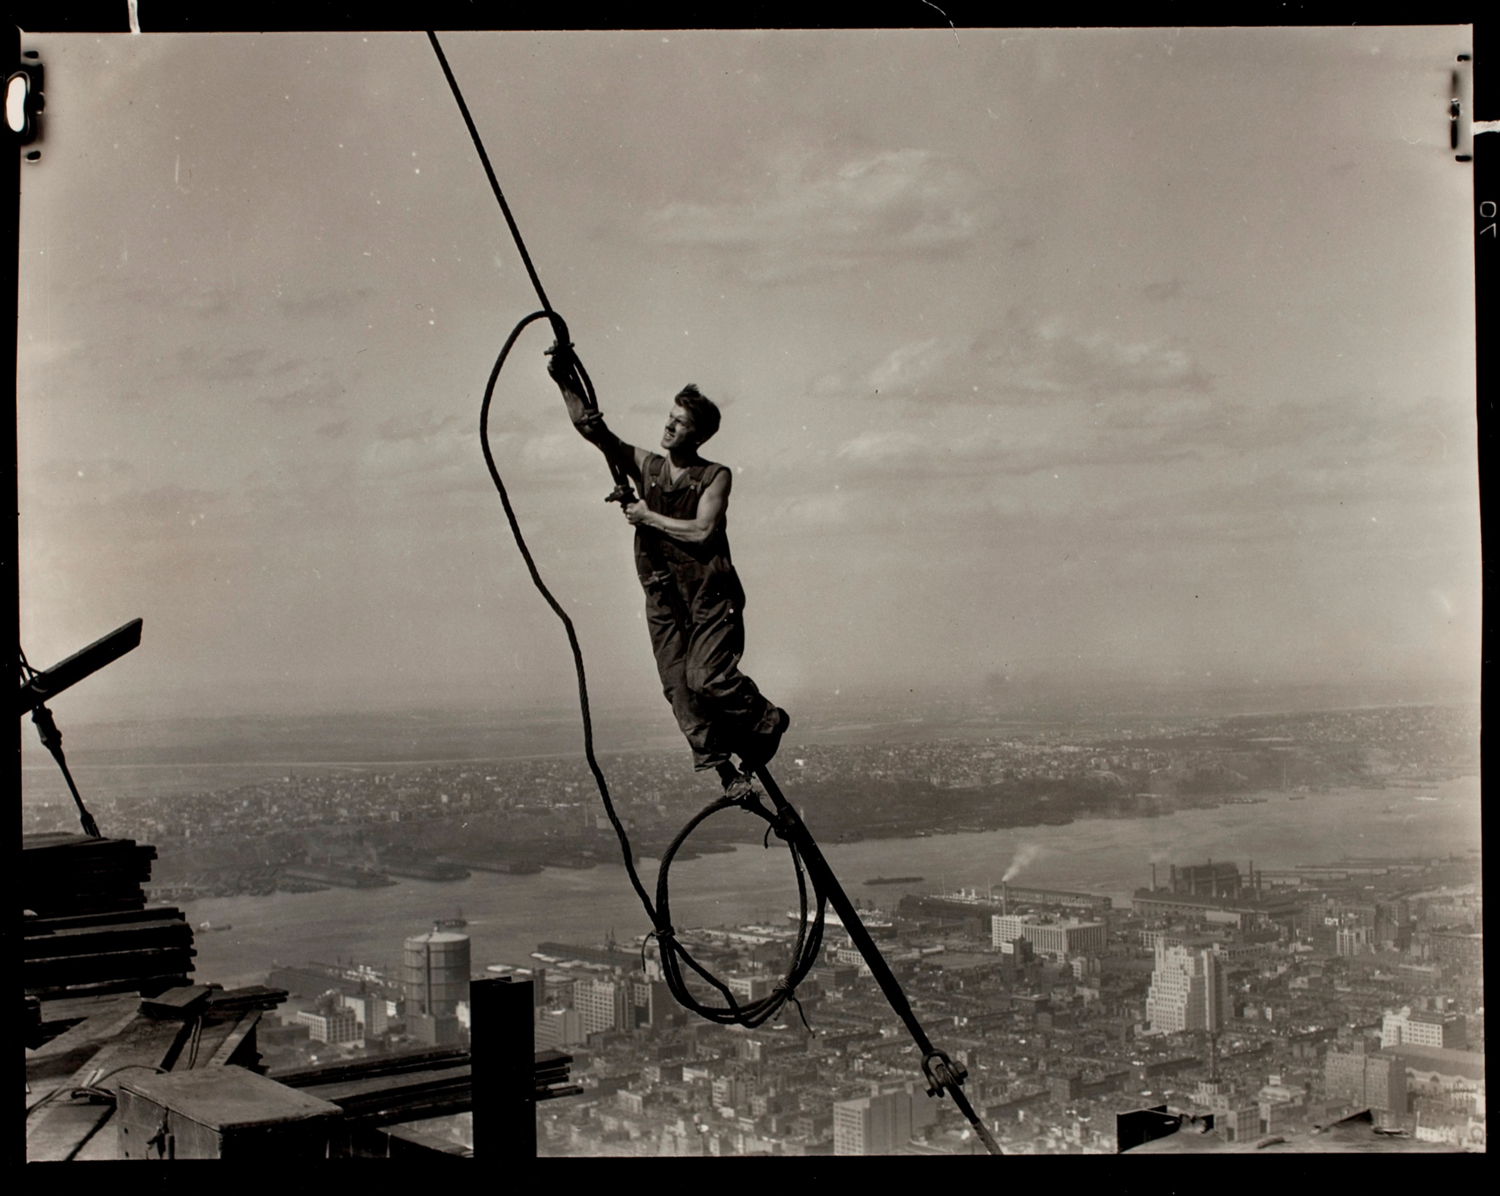 Exhibition. Lewis Hine,  The Future of America: Lewis Hine's New Deal Photographs.  International Center of Photography, New York, New York. October 4, 2013 - January 19, 2014. Pictured: Icarus Atop Empire State Building, 1931.